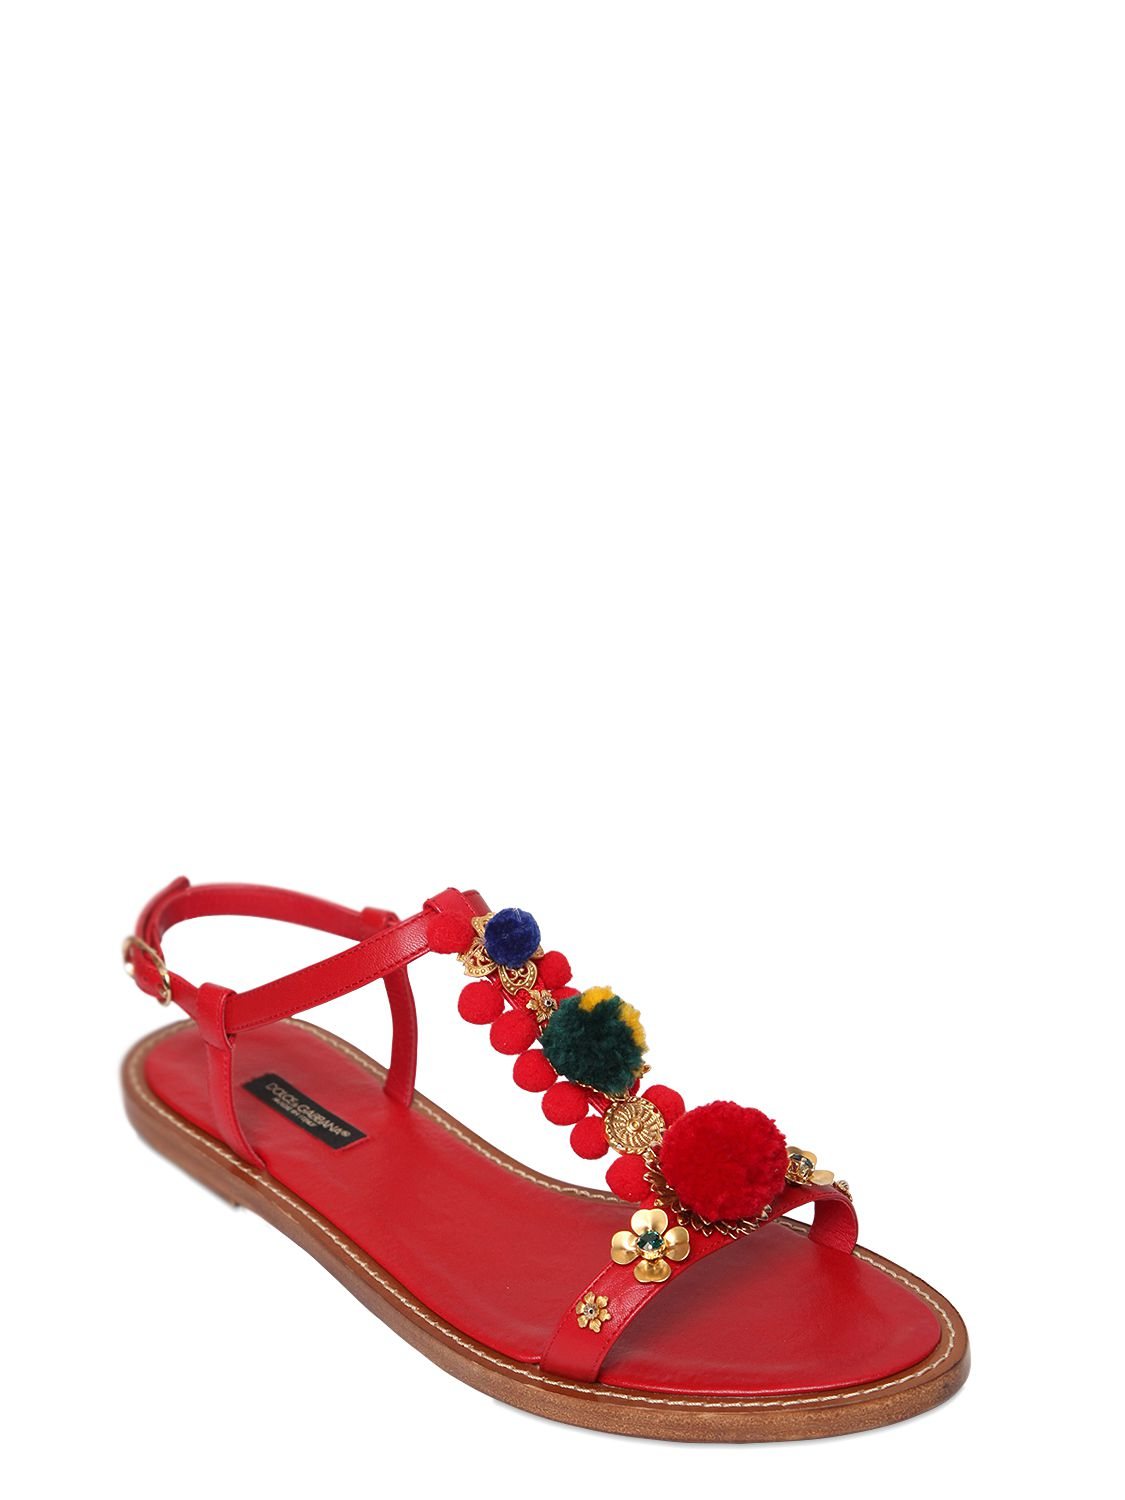 de23cf0a2 Dolce & Gabbana 10mm Pompom Leather T-strap Sandals in Red - Lyst